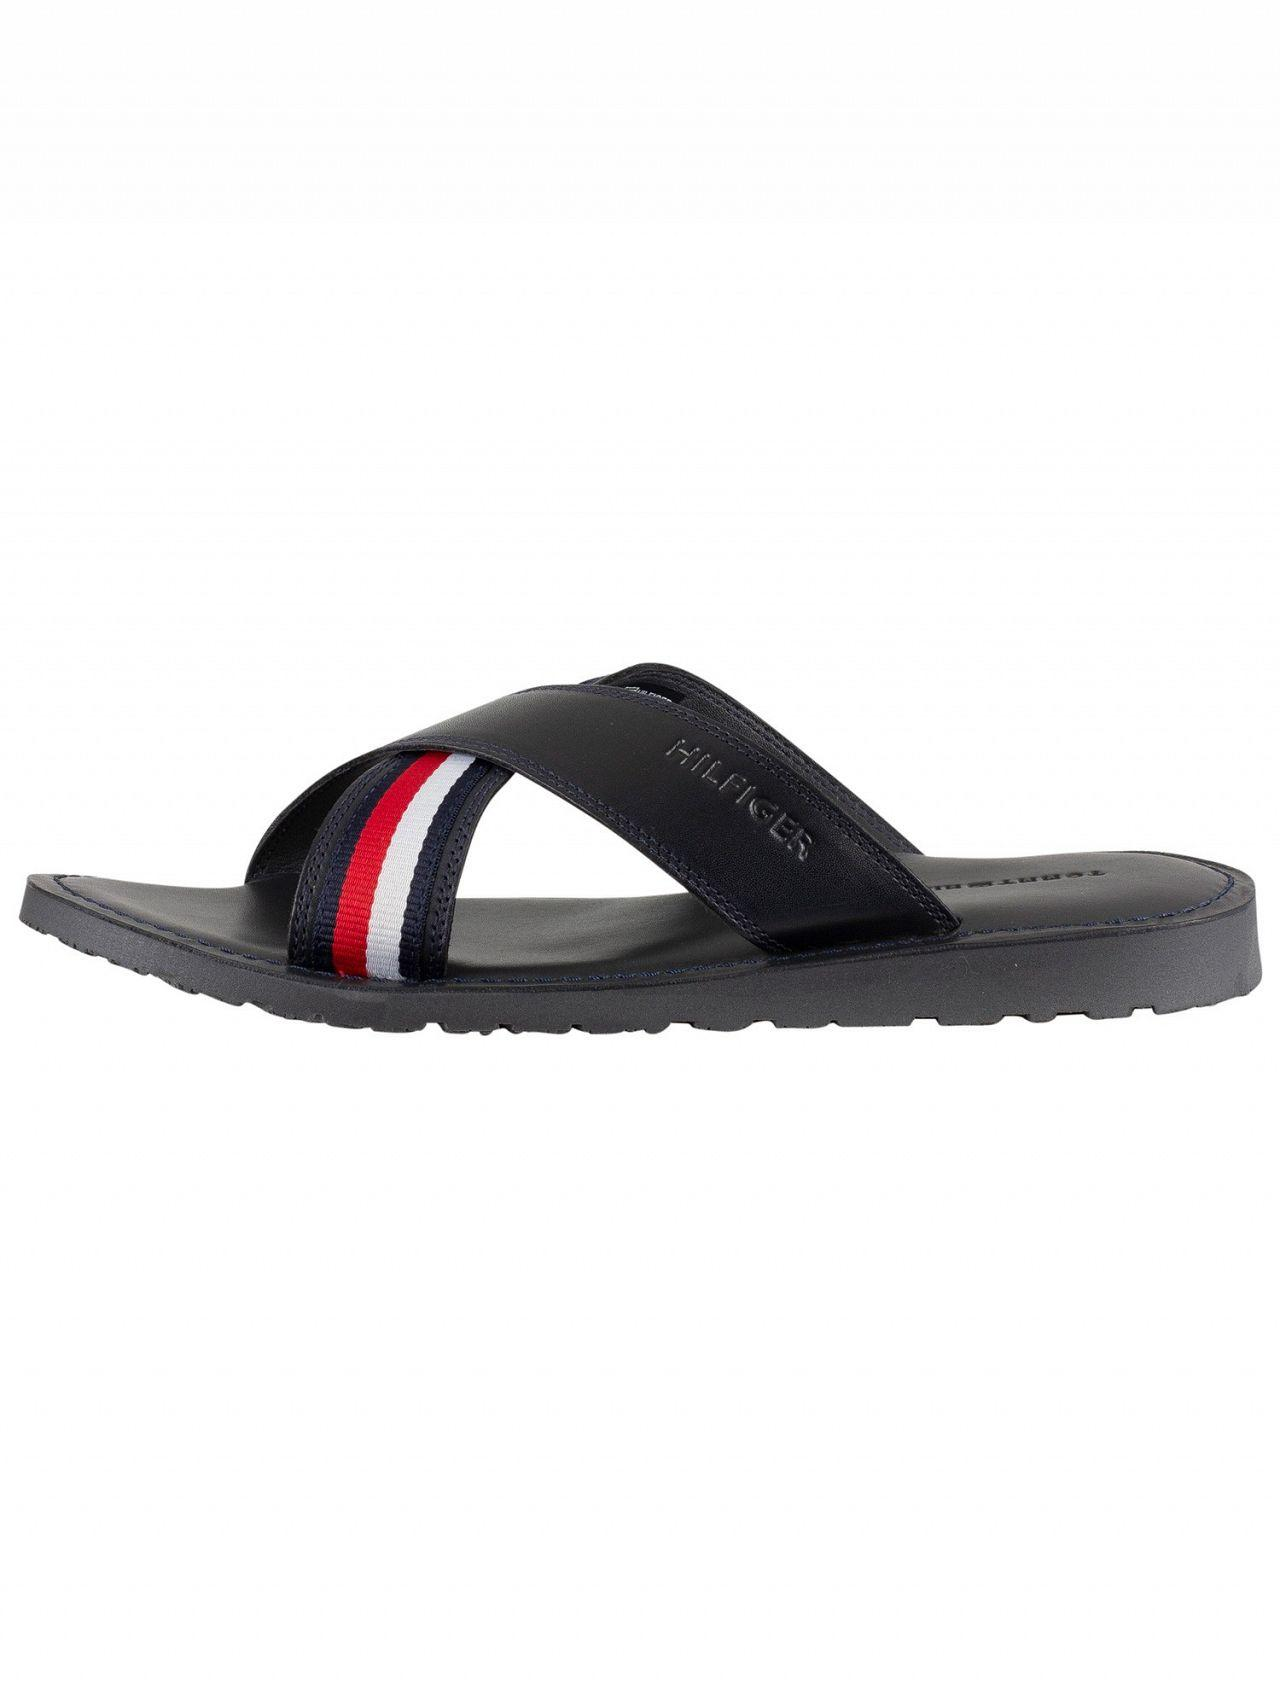 116605a12ab20 Tommy Hilfiger Midnight Criss Cross Leather Sandals in Blue for Men - Lyst